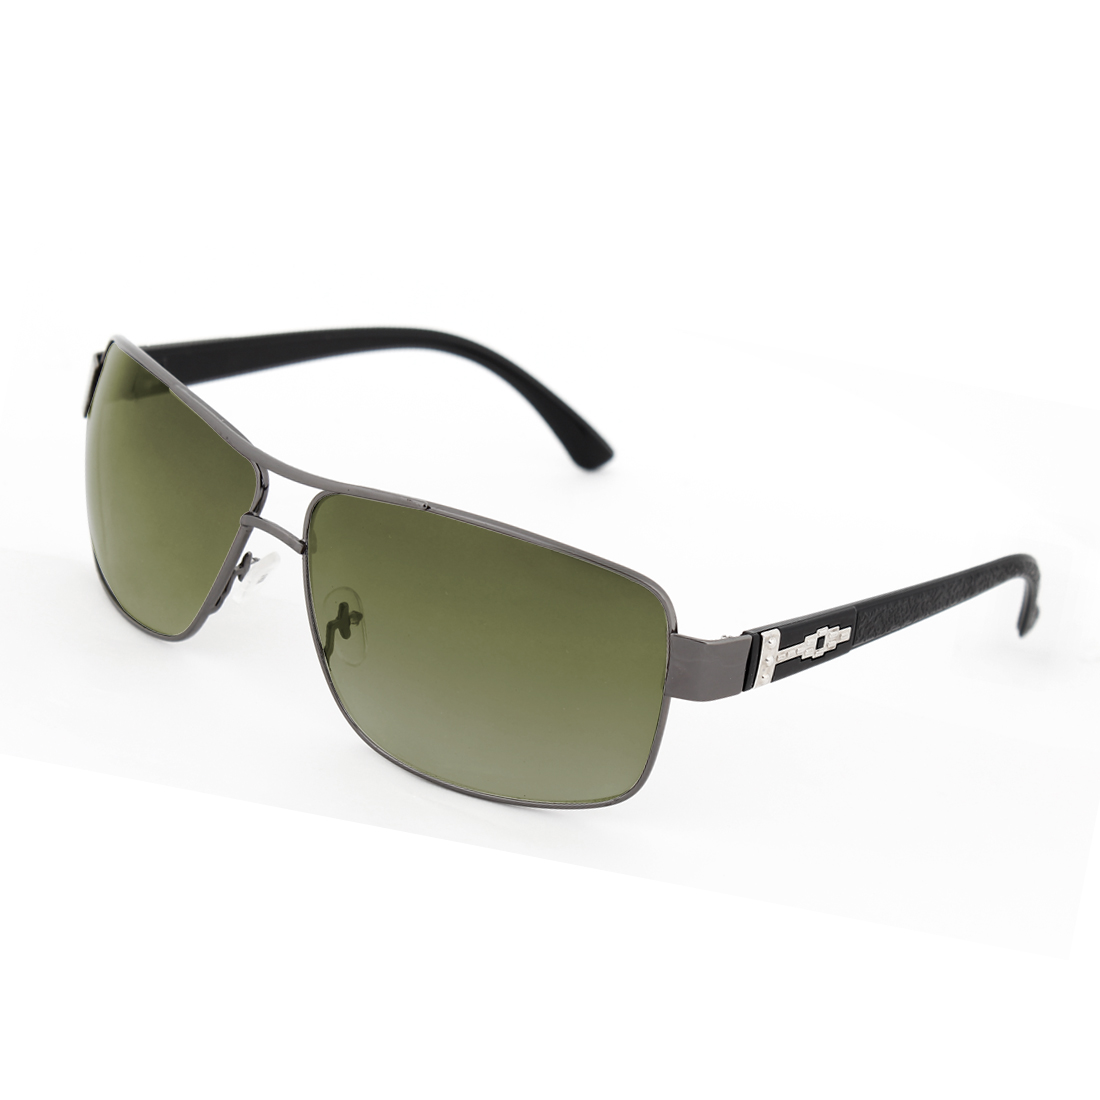 Clear Green Rectangular Design Len Metal Full Frame Sunglasses for Men